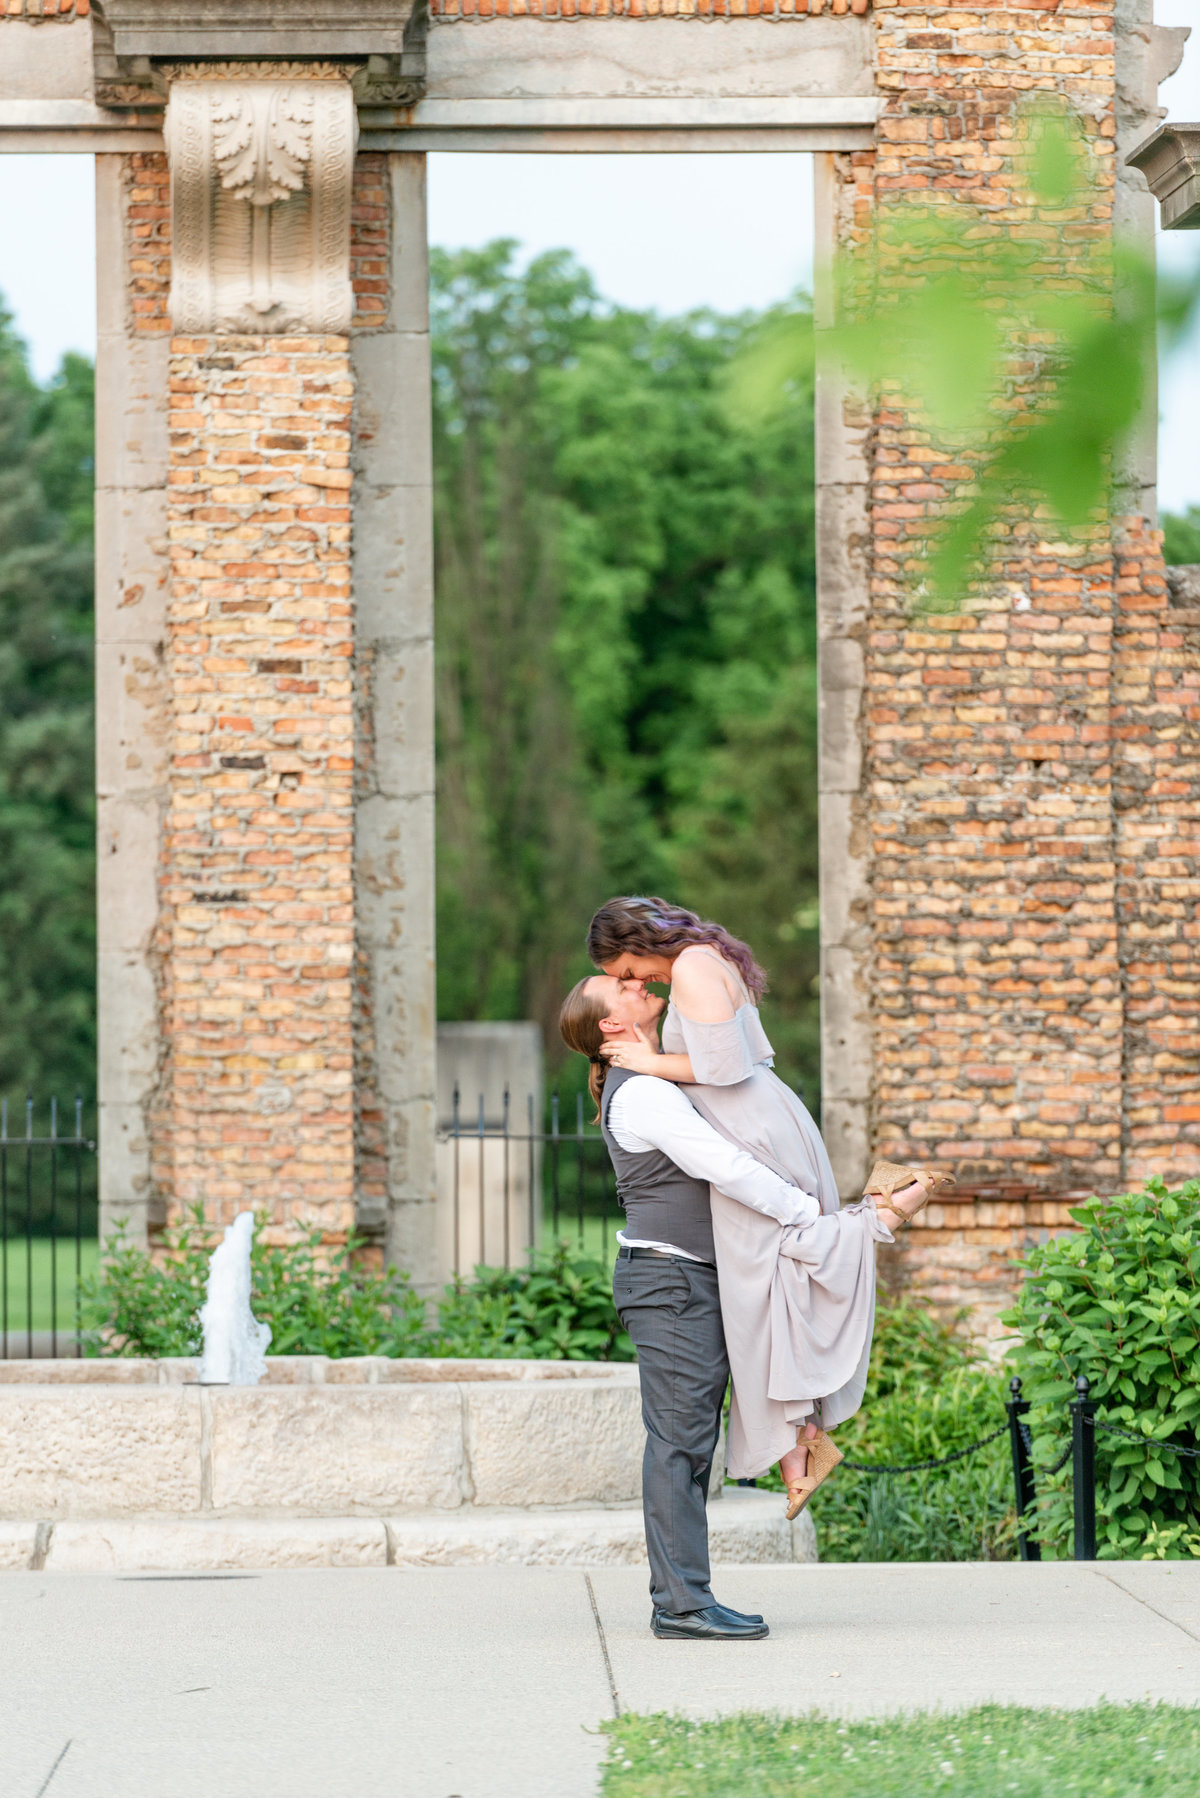 Man with ponytail lifts bride wearing soft grey dress in front of the ruins at Holliday Park in Indianapolis